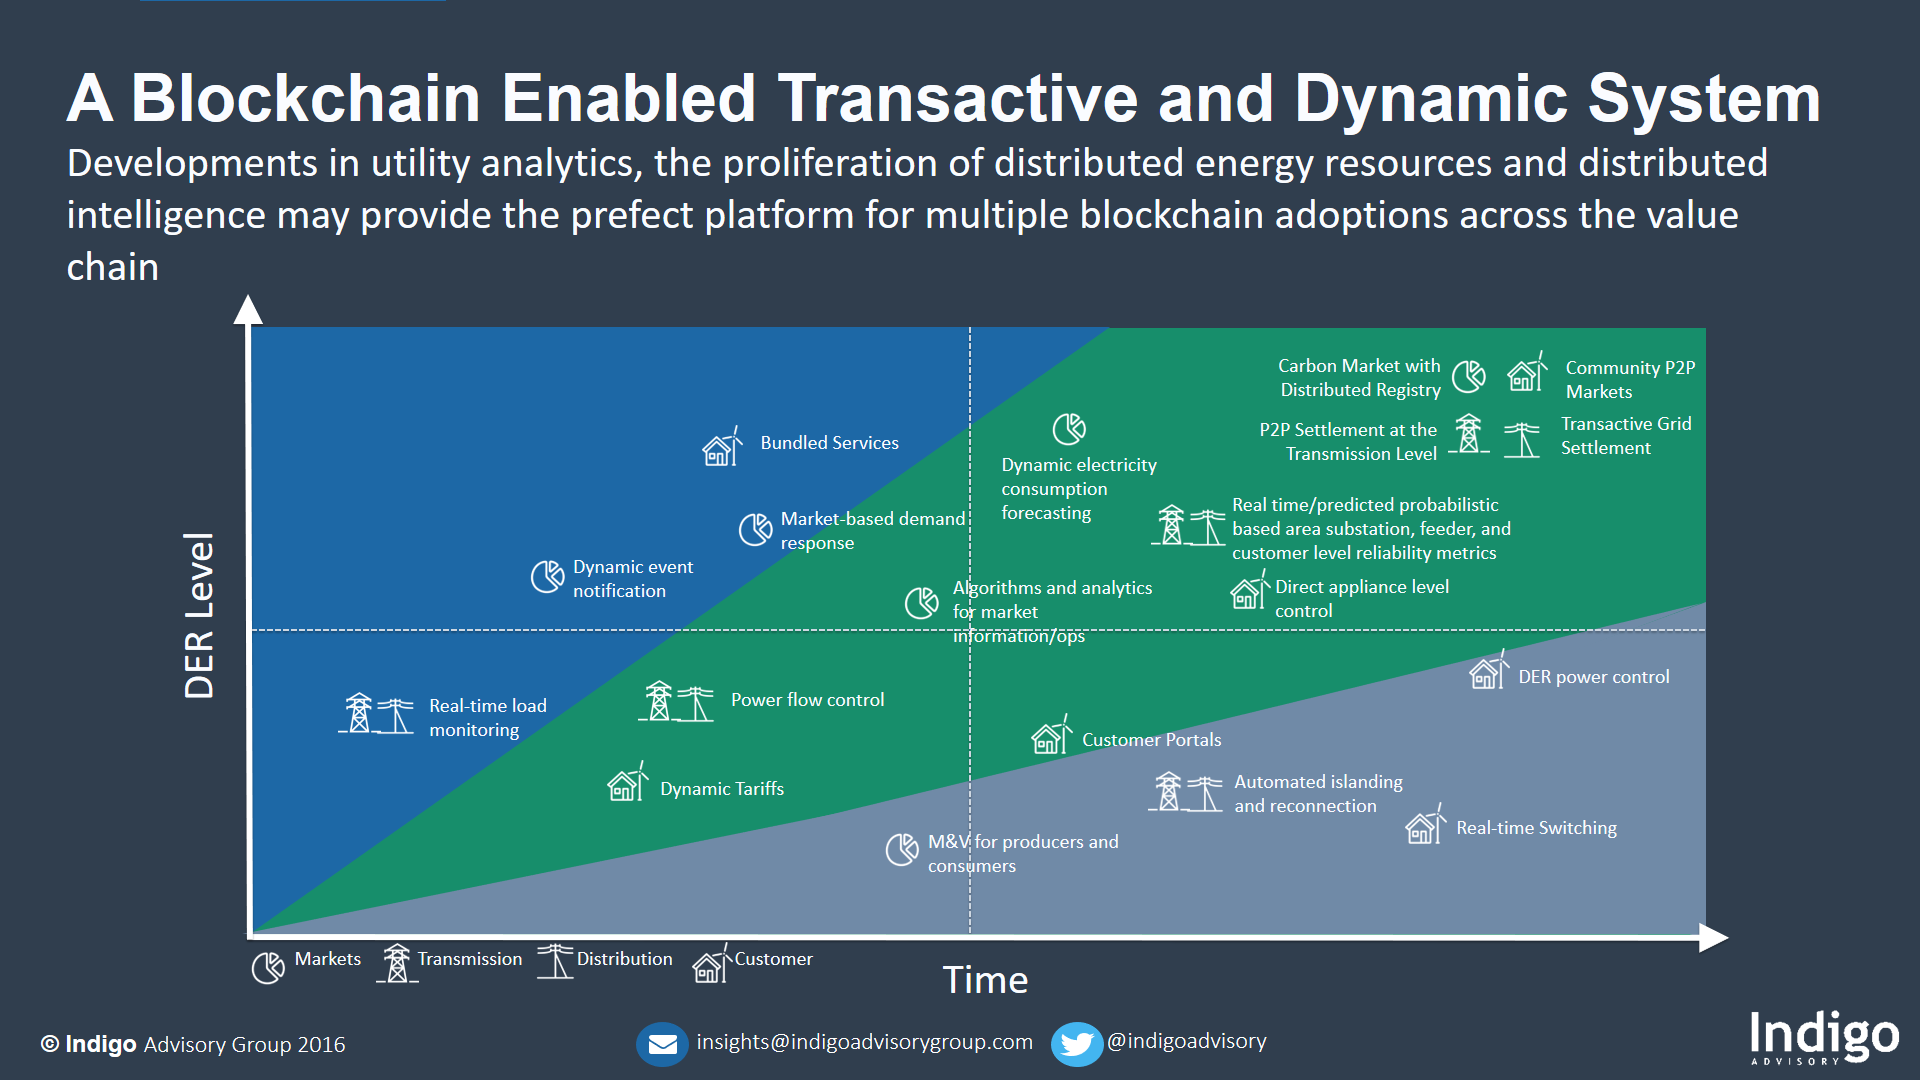 A Blockchain Enabled Transactive and Dynamic System